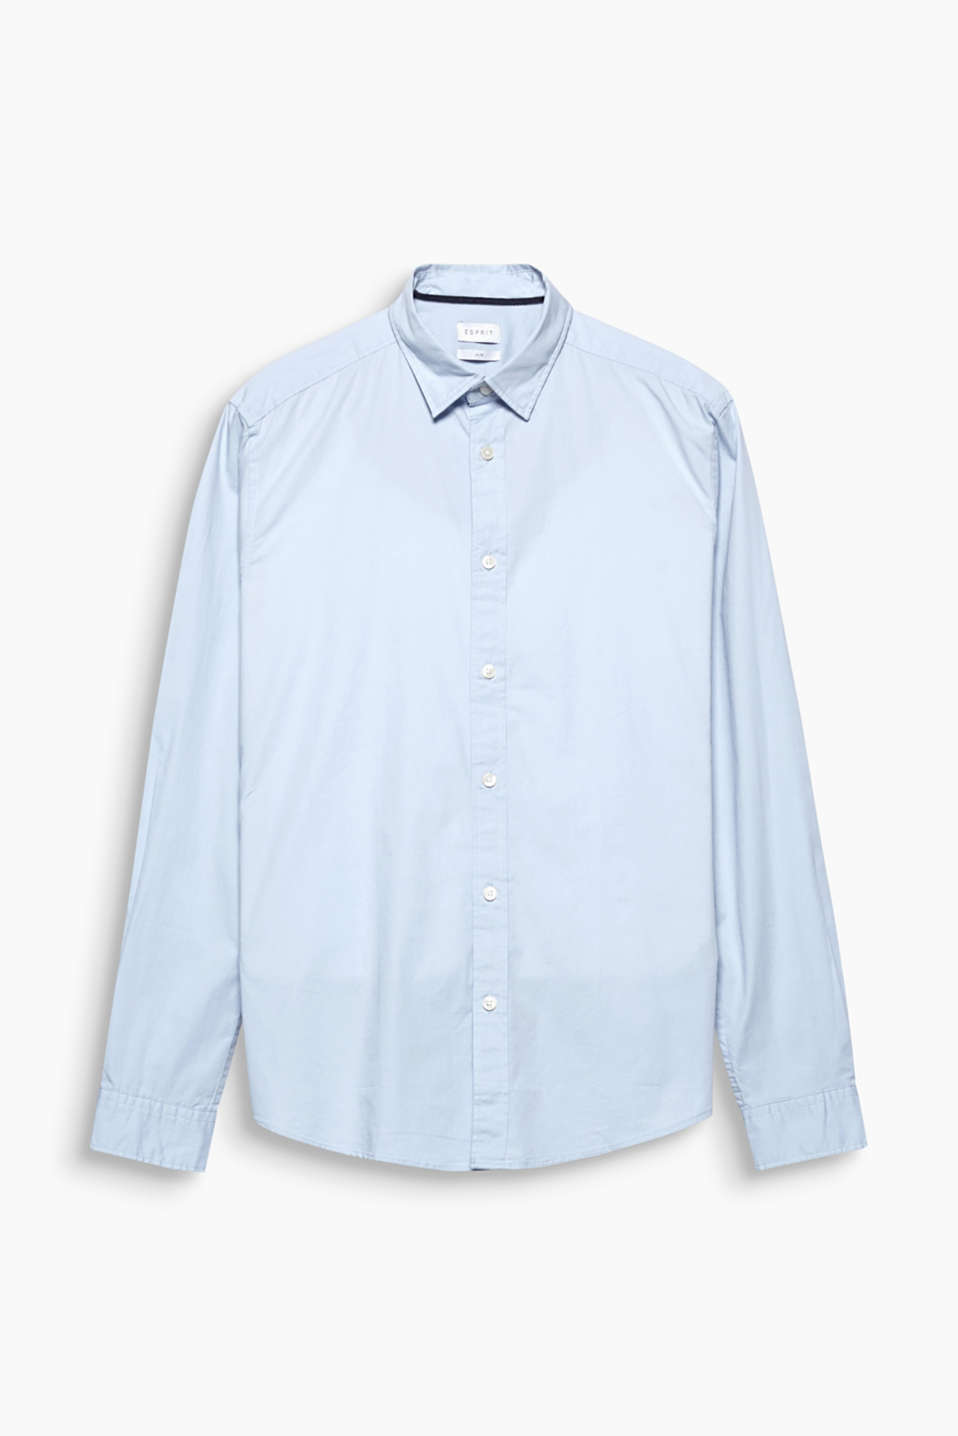 Poplin top in stretch cotton, LIGHT BLUE, detail image number 7